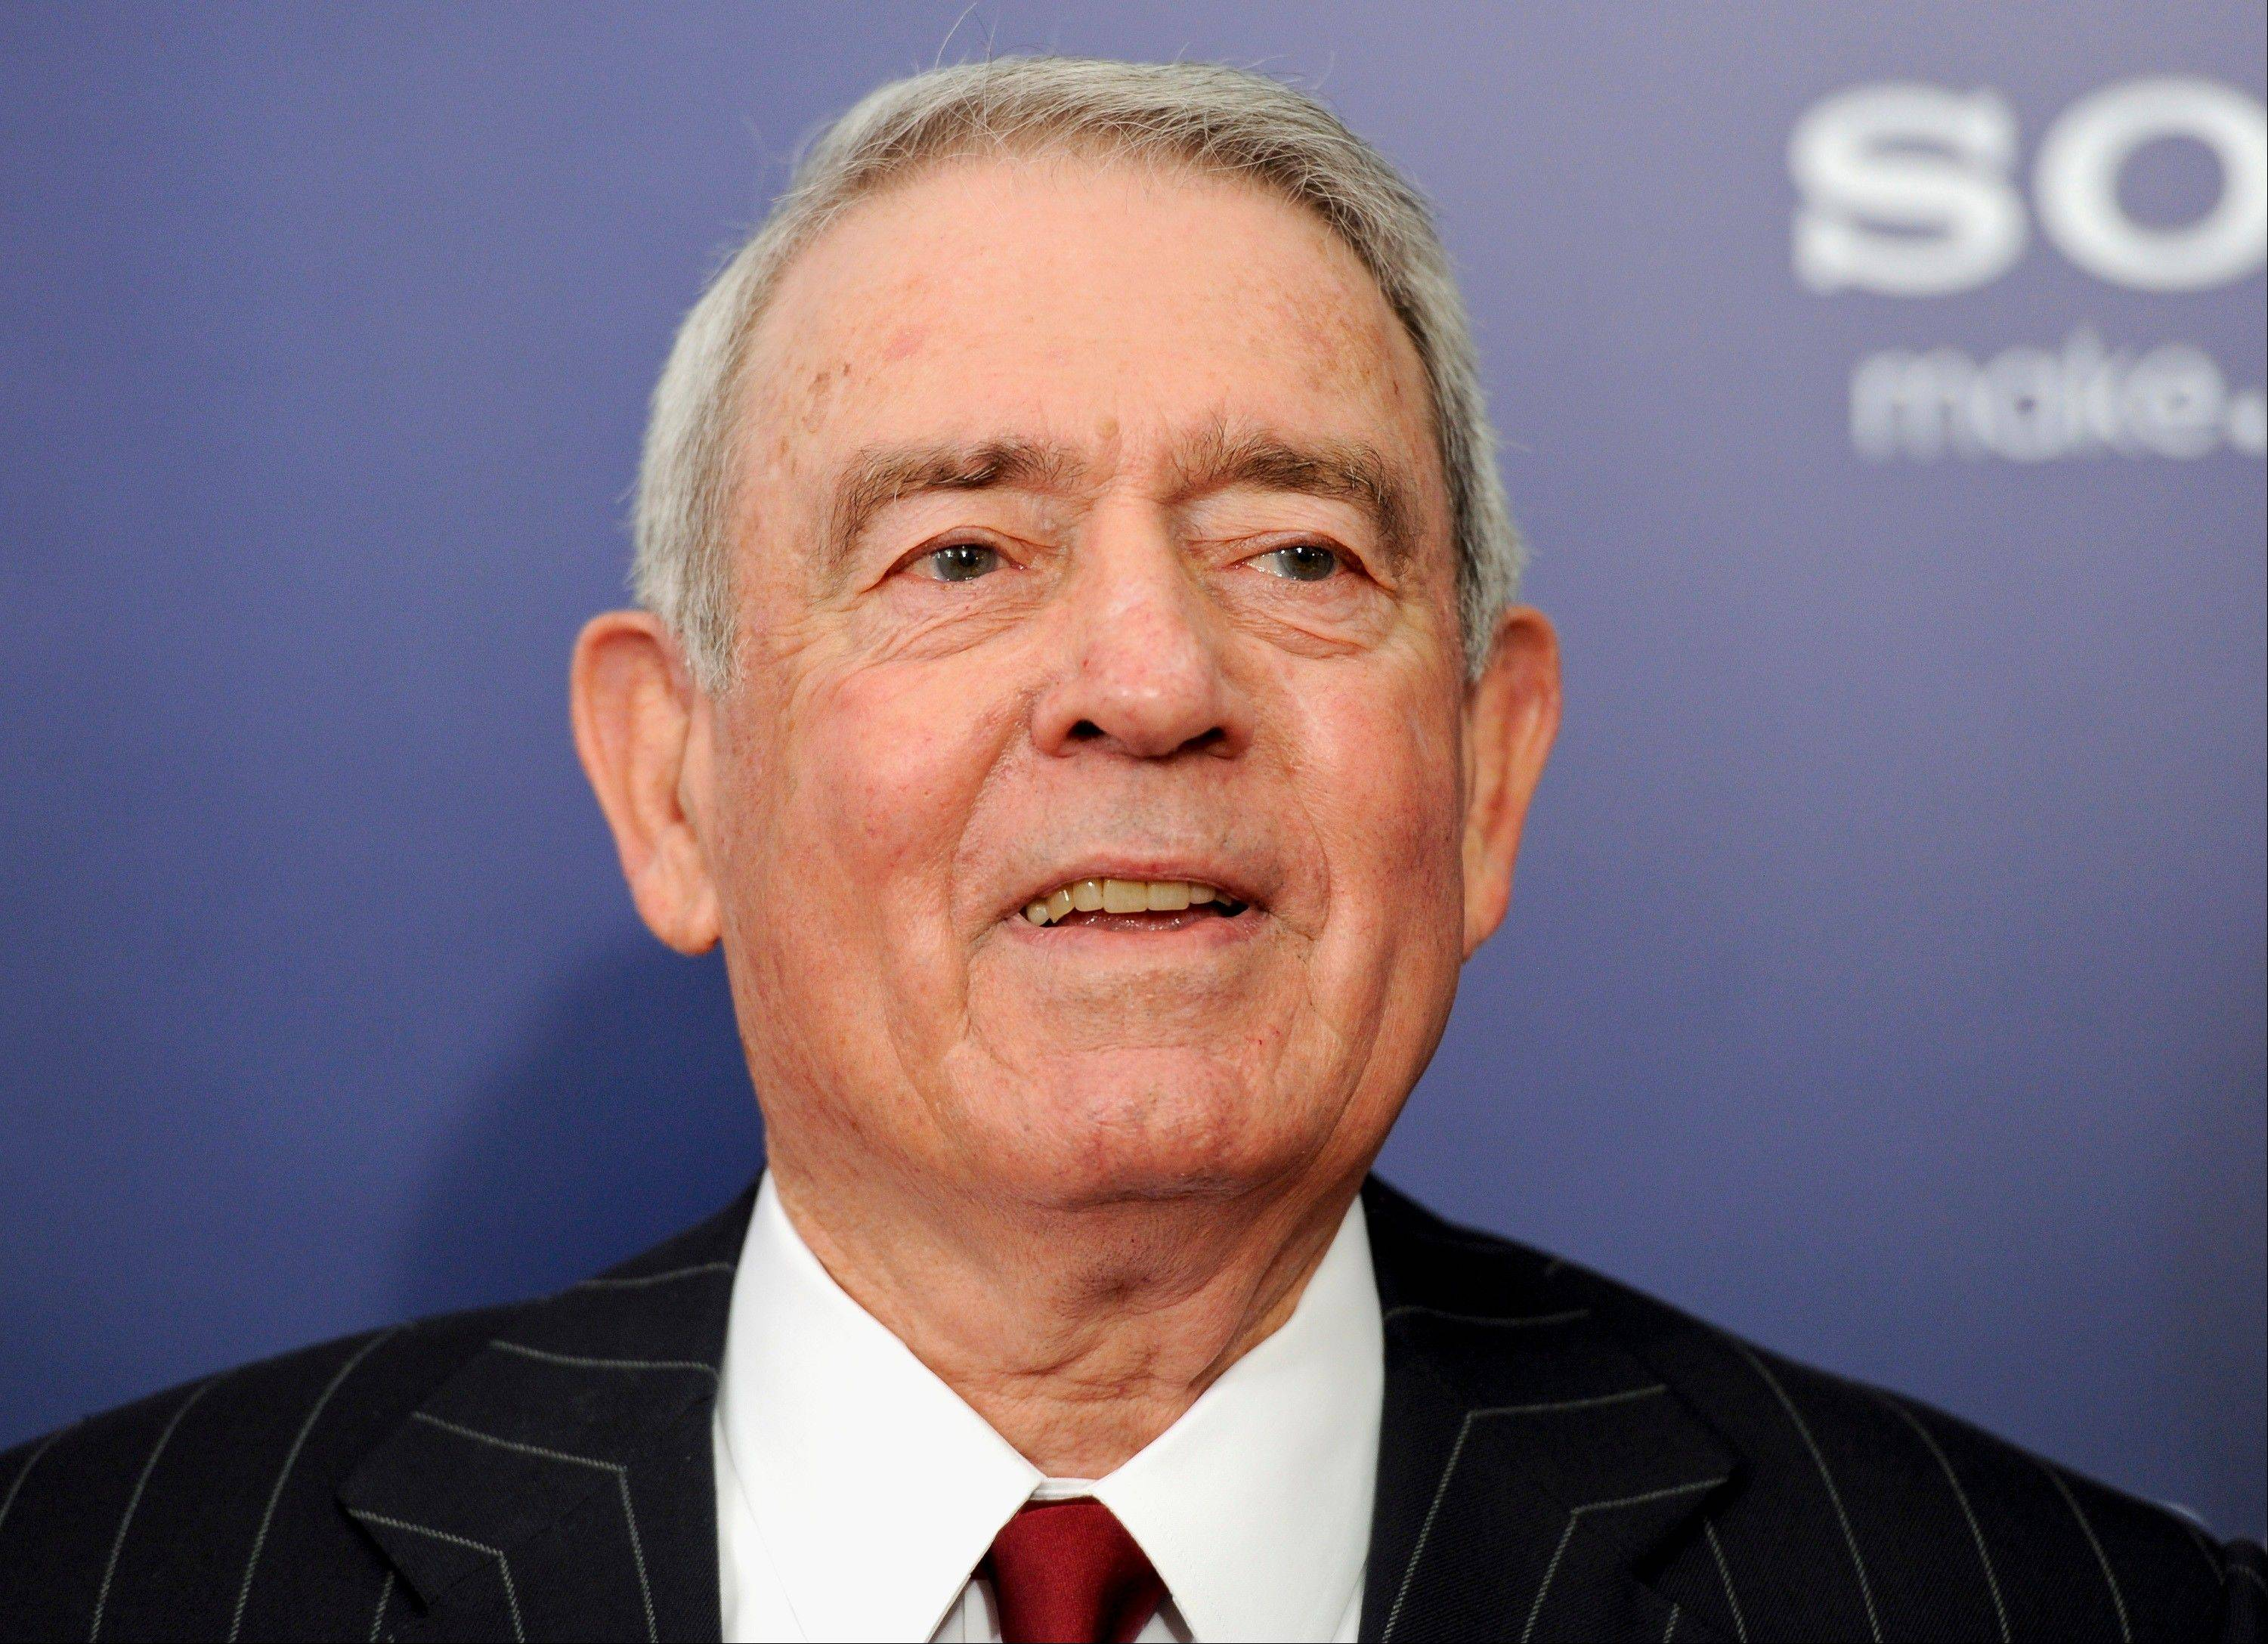 The 50th anniversary coverage of the Kennedy assassination on CBS News won't include the recollections of the longtime anchor Dan Rather, further proof of the lingering bitterness following Rather's messy exit and subsequent lawsuit against the network.